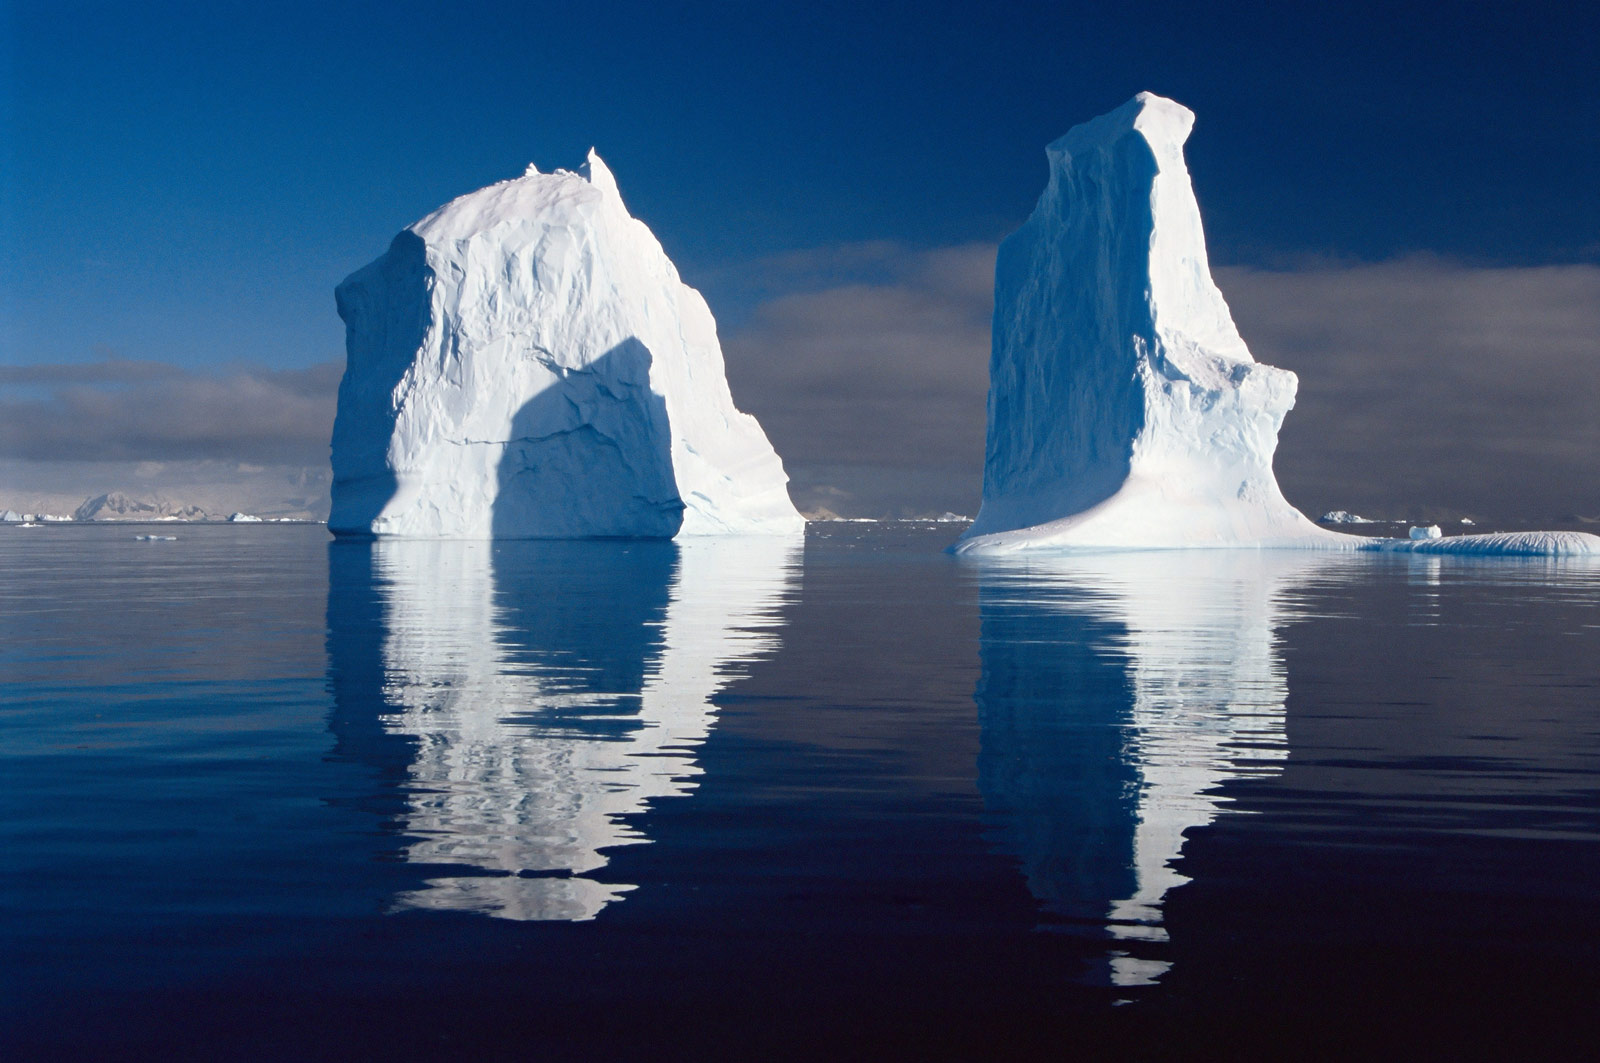 Reflection of icebergs - copyright Doug Allan